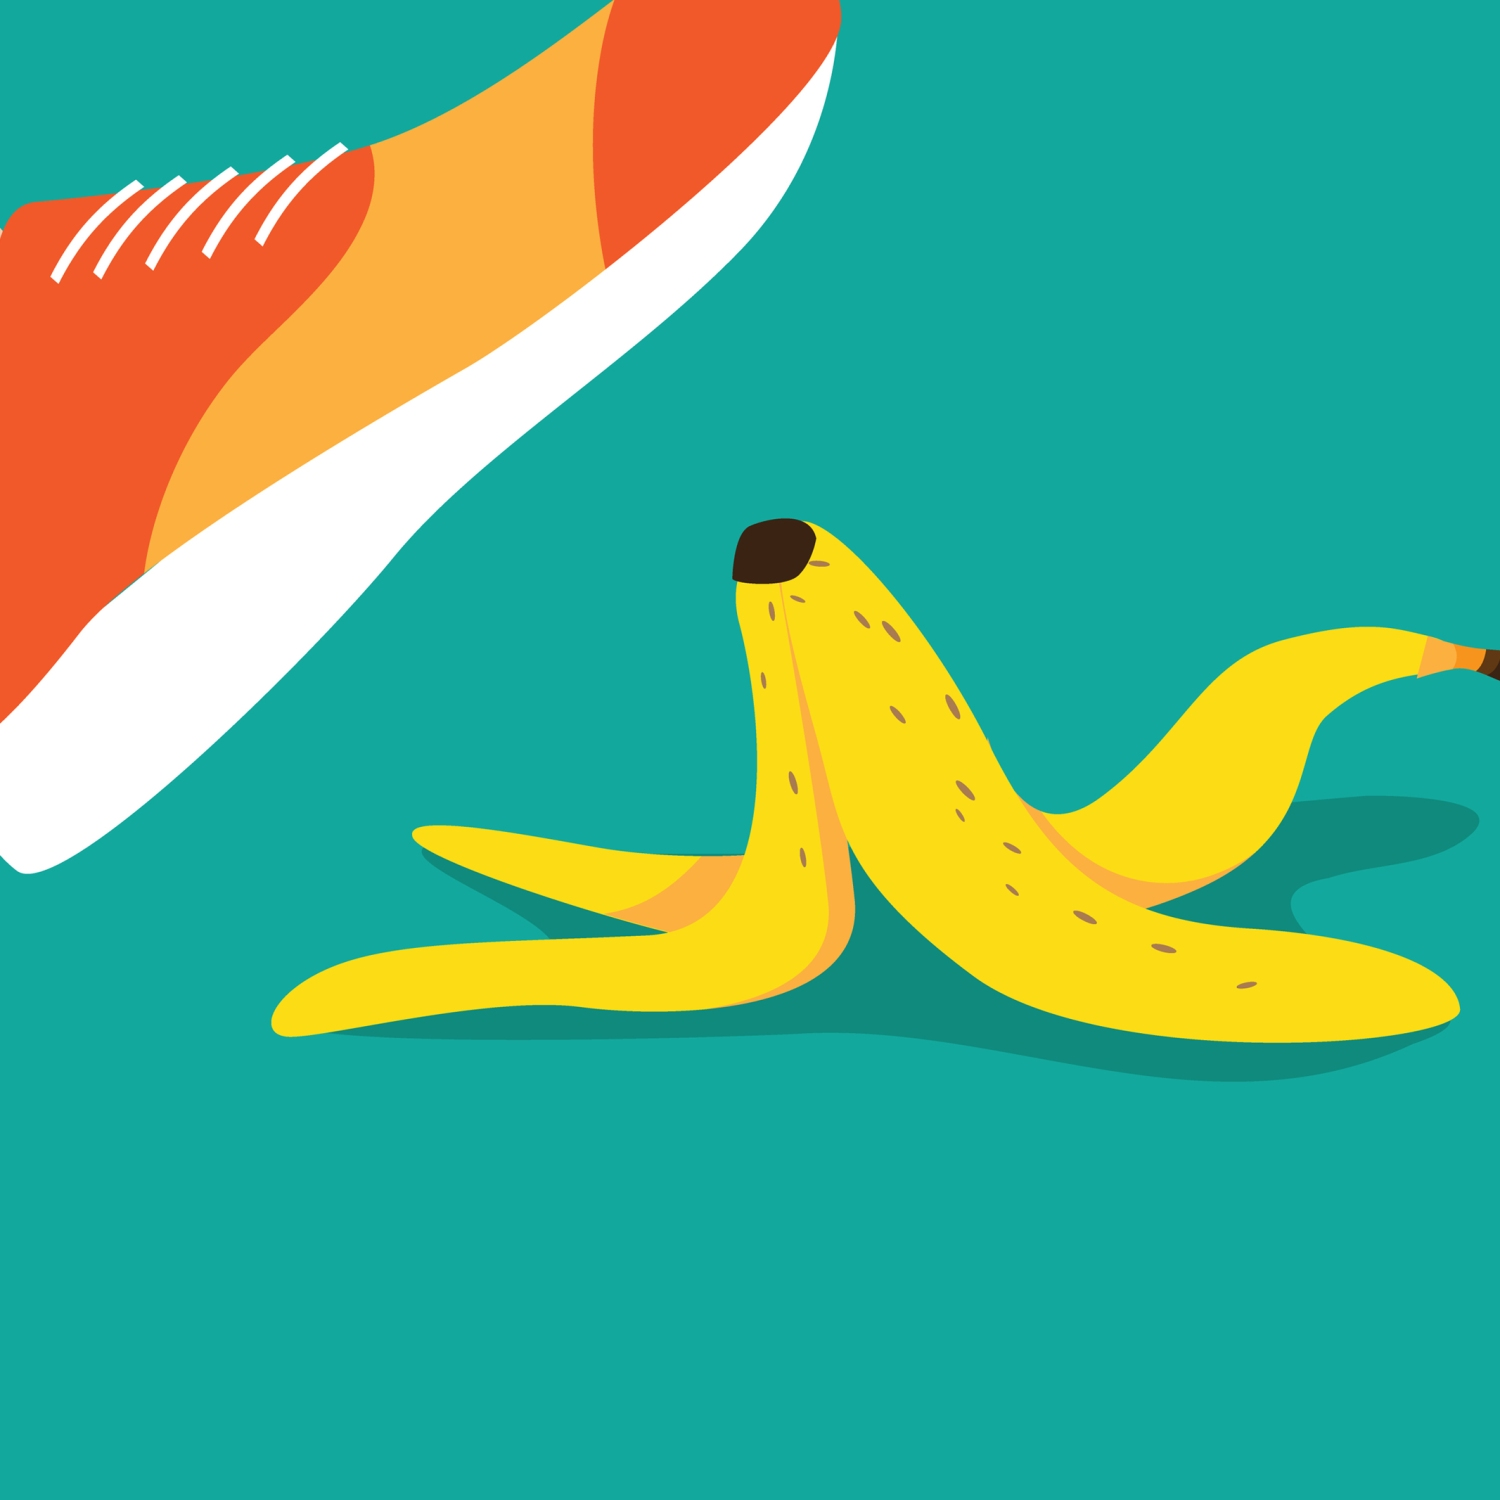 Illustration of foot slipping on a banana peel